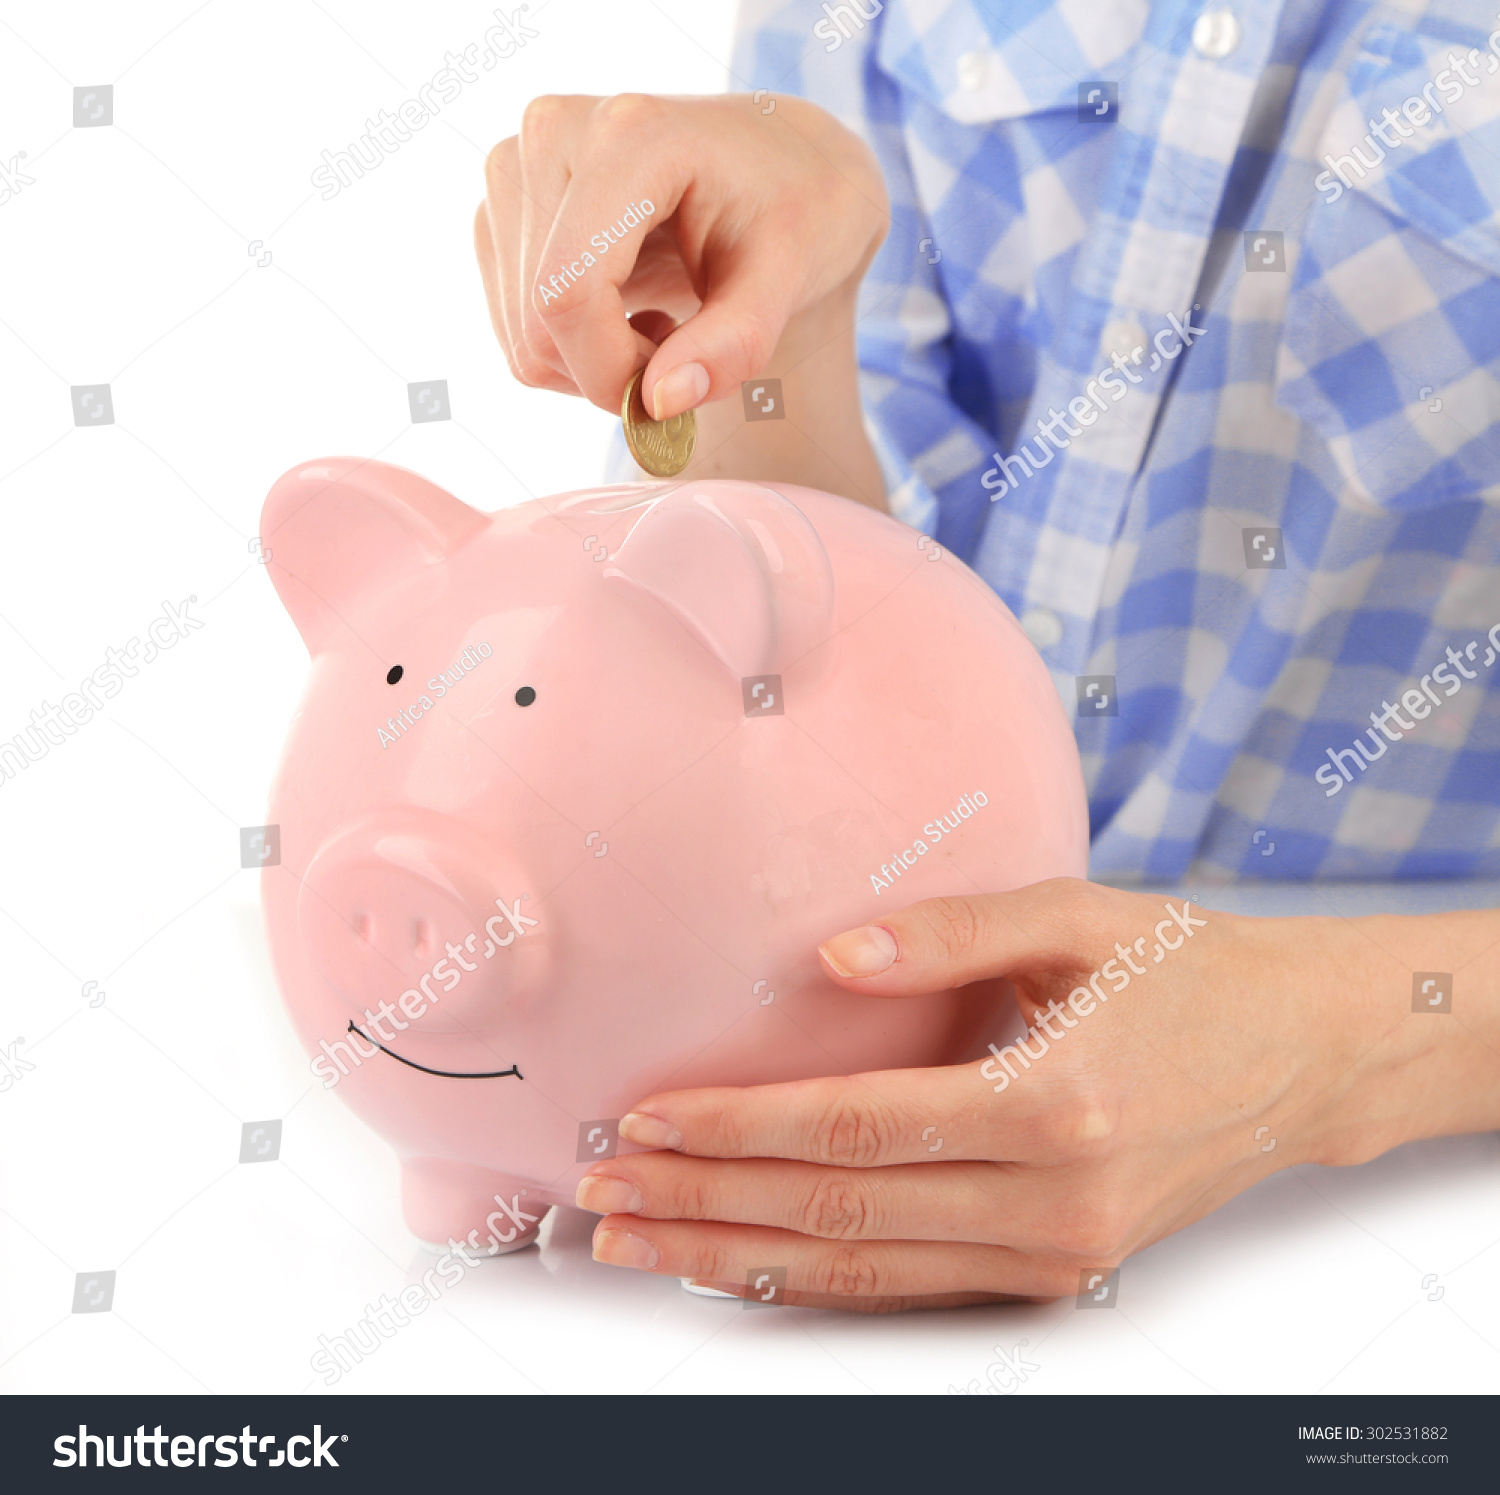 female hands putting coin into pink stock photo 302531882